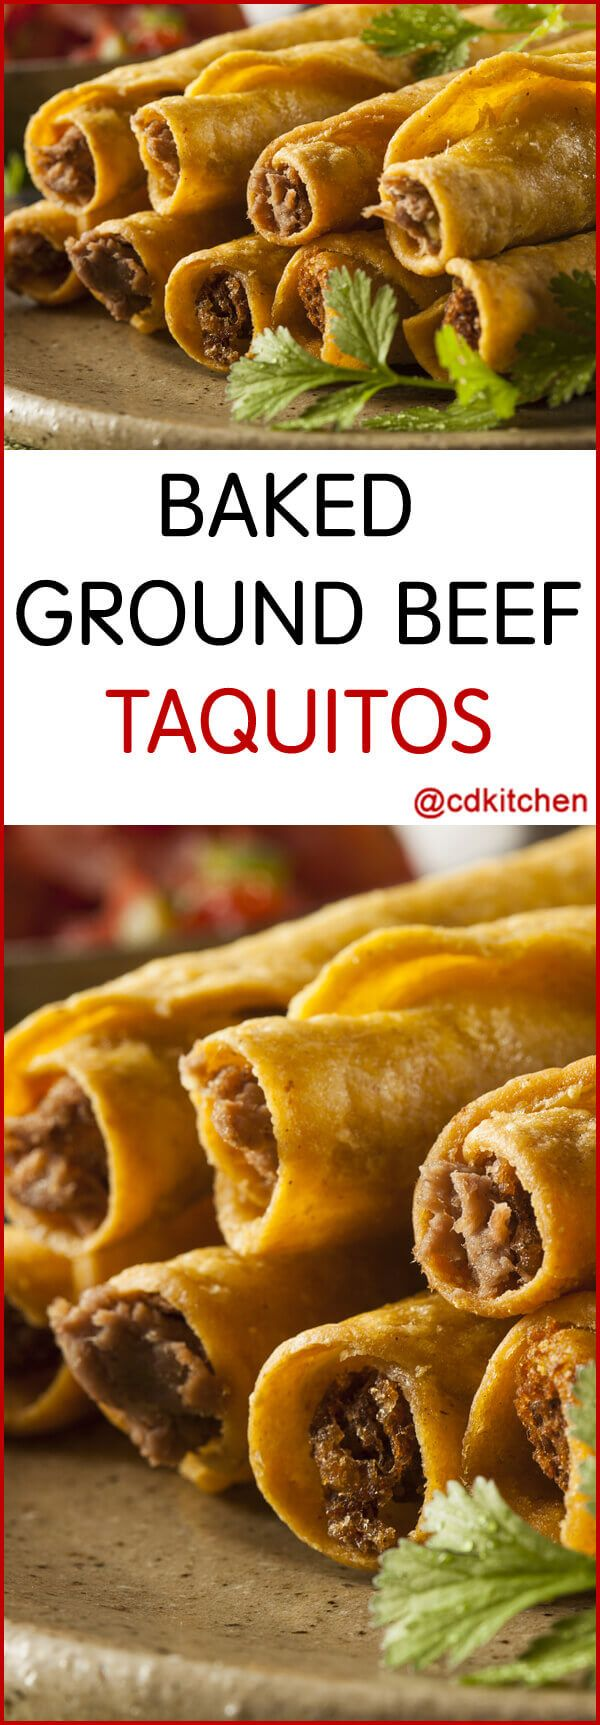 Baked Ground Beef Taquitos - These tasty rolled tacos are filled with spicy ground beef and creamy cheese. Bonus: they are baked instead of fried so they are lighter on calories than the usual restaurant versions. | CDKitchen.com #groundbeefrecipes